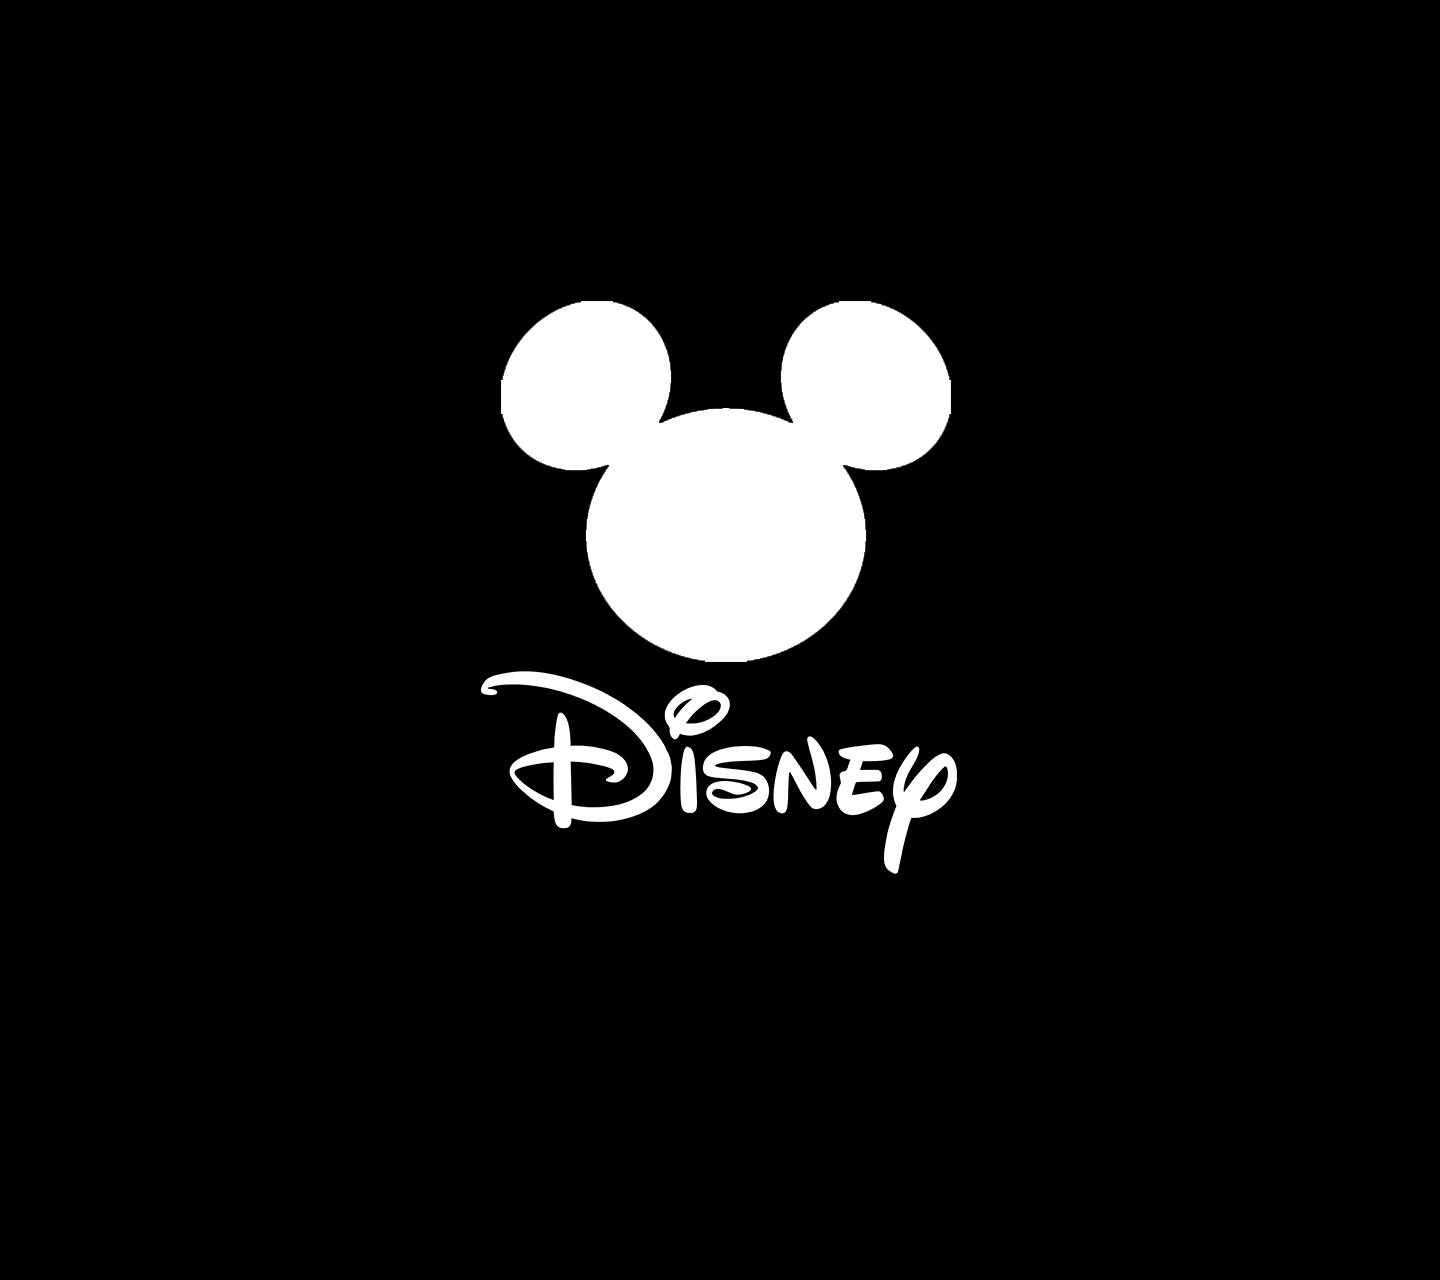 Disney Logo Black